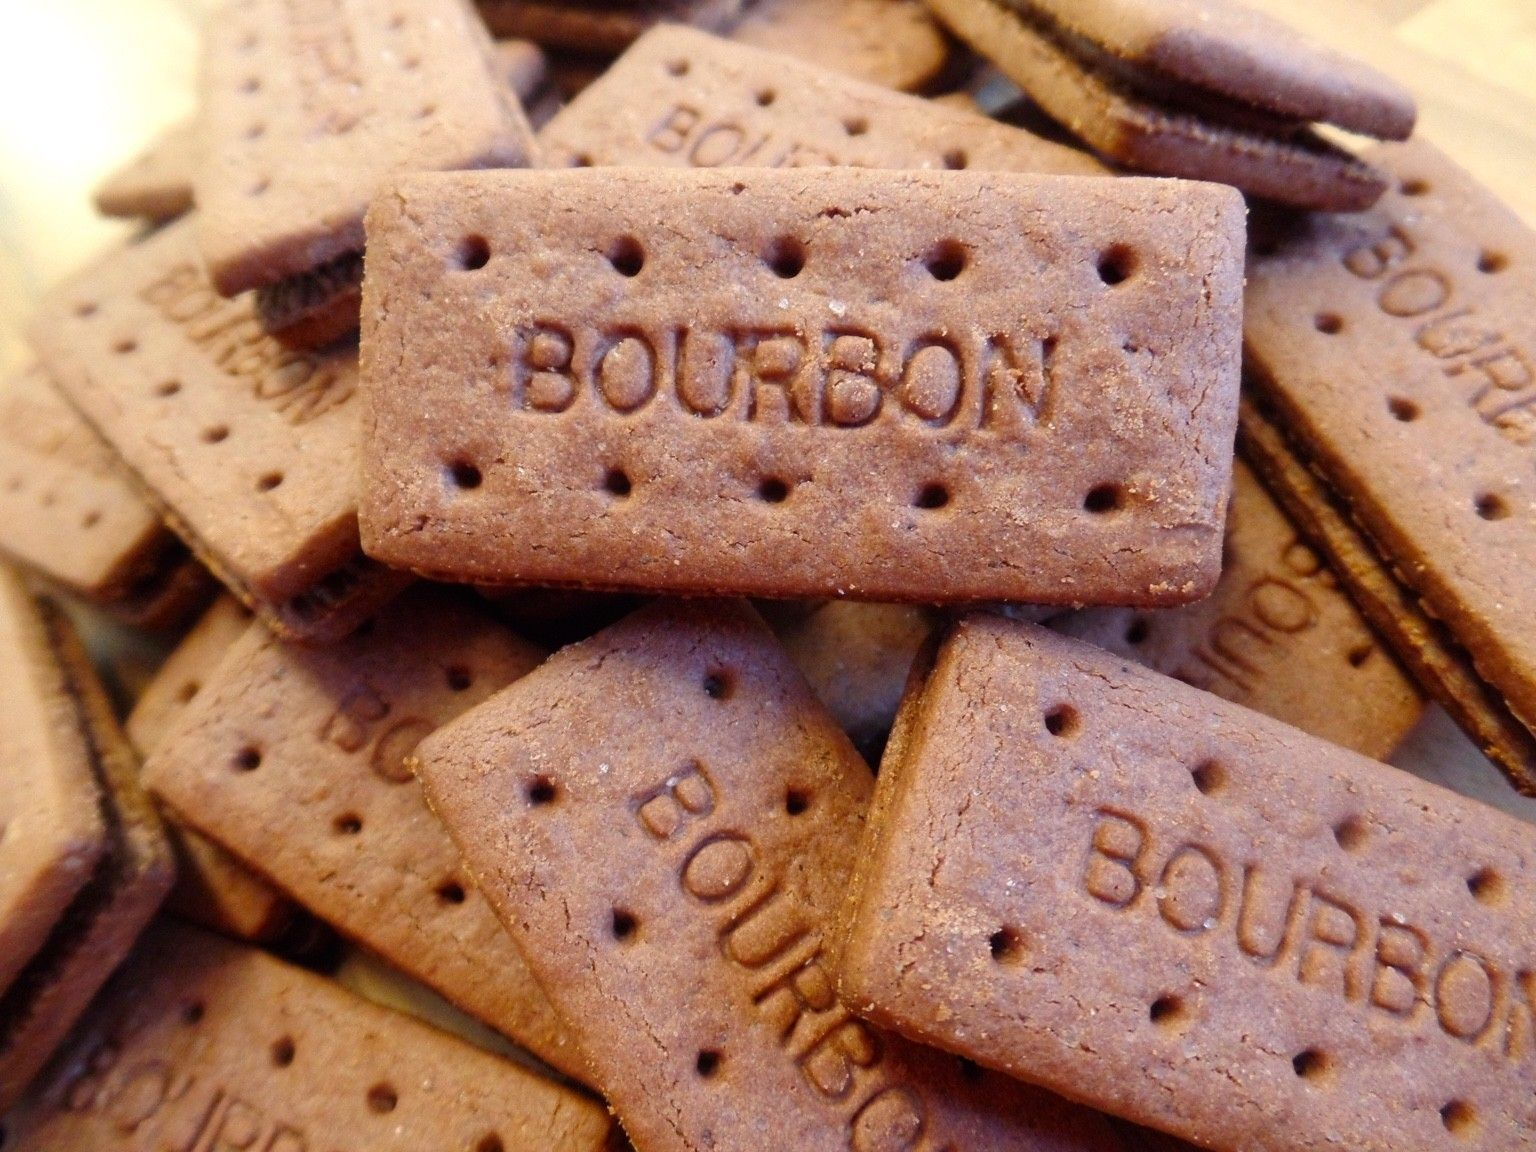 Any bourbon lovers here? - cce0093db53ebe10d6b50a08ce8a4146.jpg